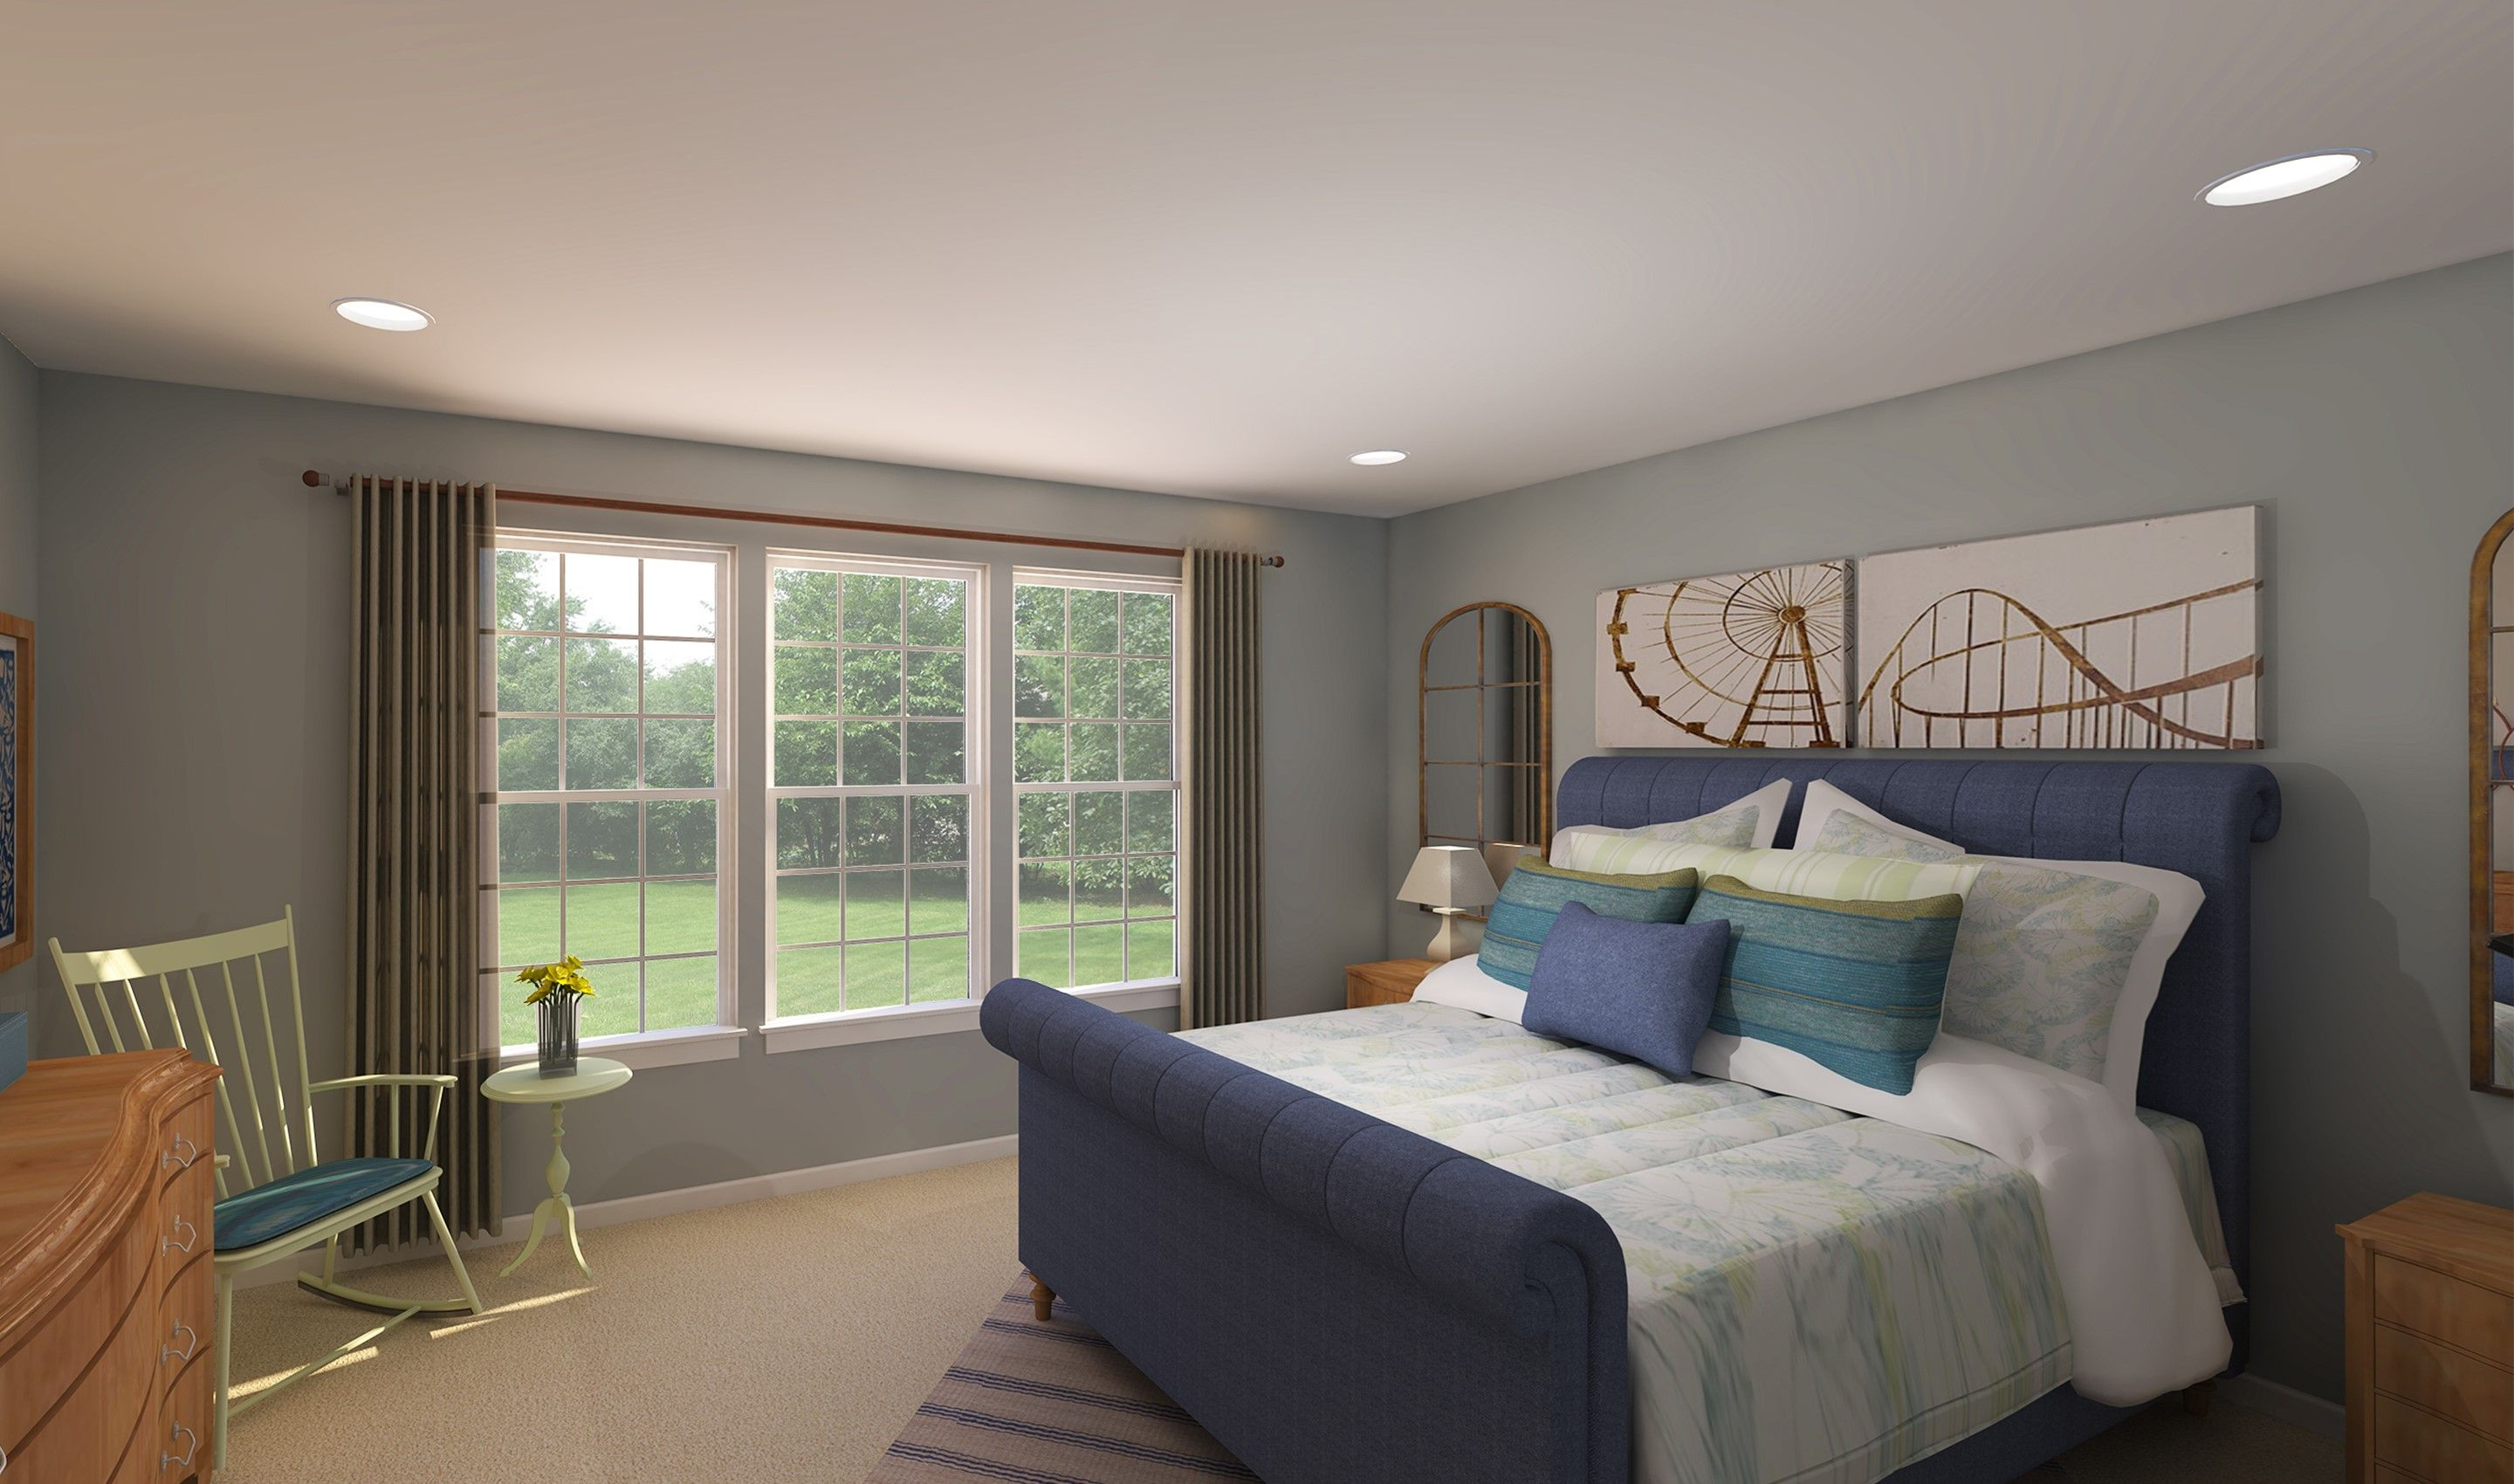 Bedroom featured in the Portland By K. Hovnanian® Homes - Build on Your Lot in Toledo, OH